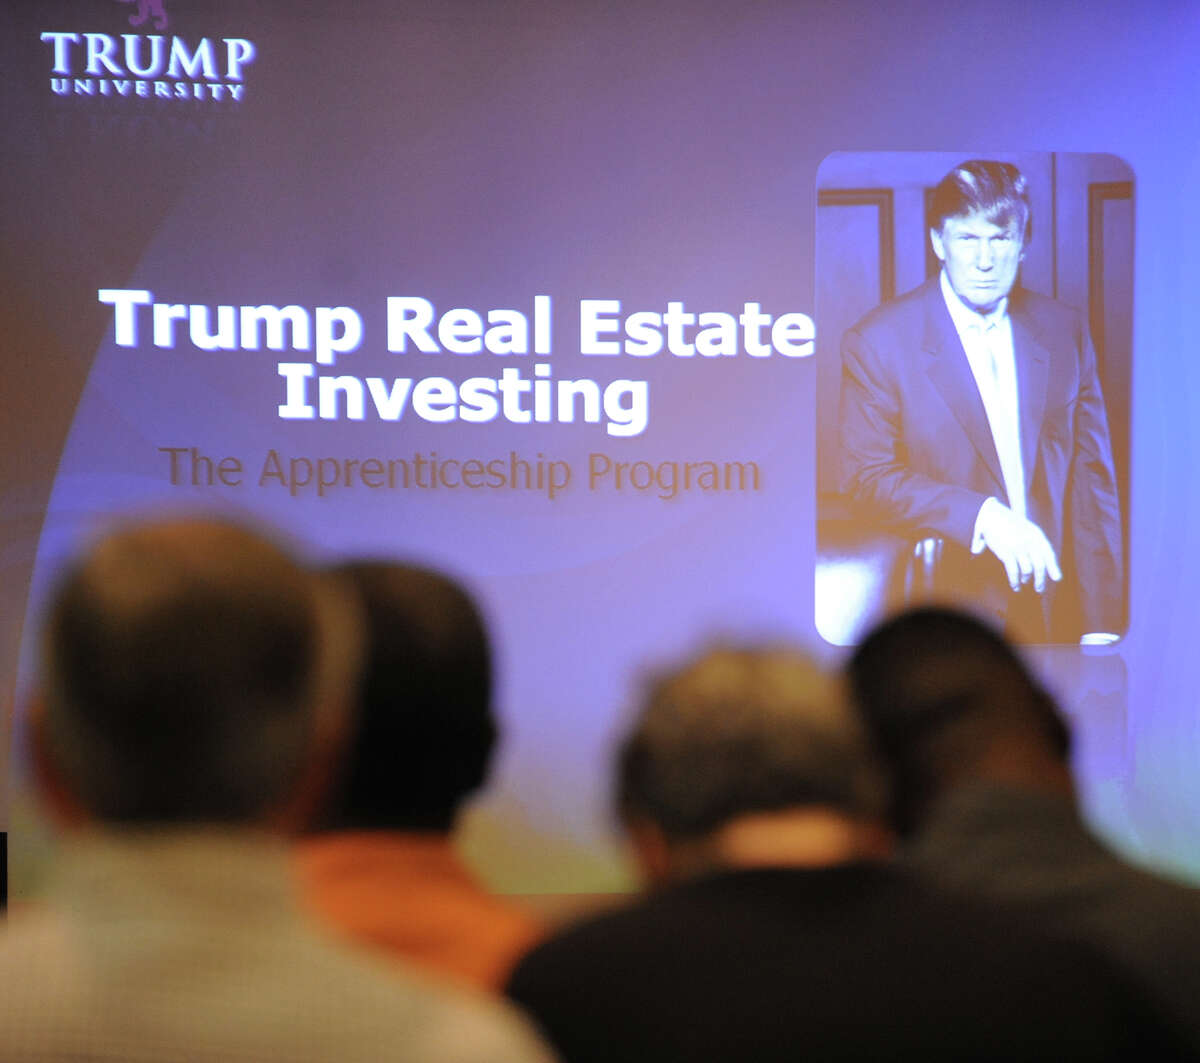 10 things to know about Trump UniversityHow did students lose so much to the school? The alleged scam started out as a free 90-minute seminar on making money in real estate. If you really wanted to learn how to profit in the industry, prosecutors said the school sold you on a three-day seminar that cost $1,495. From there, the school offered